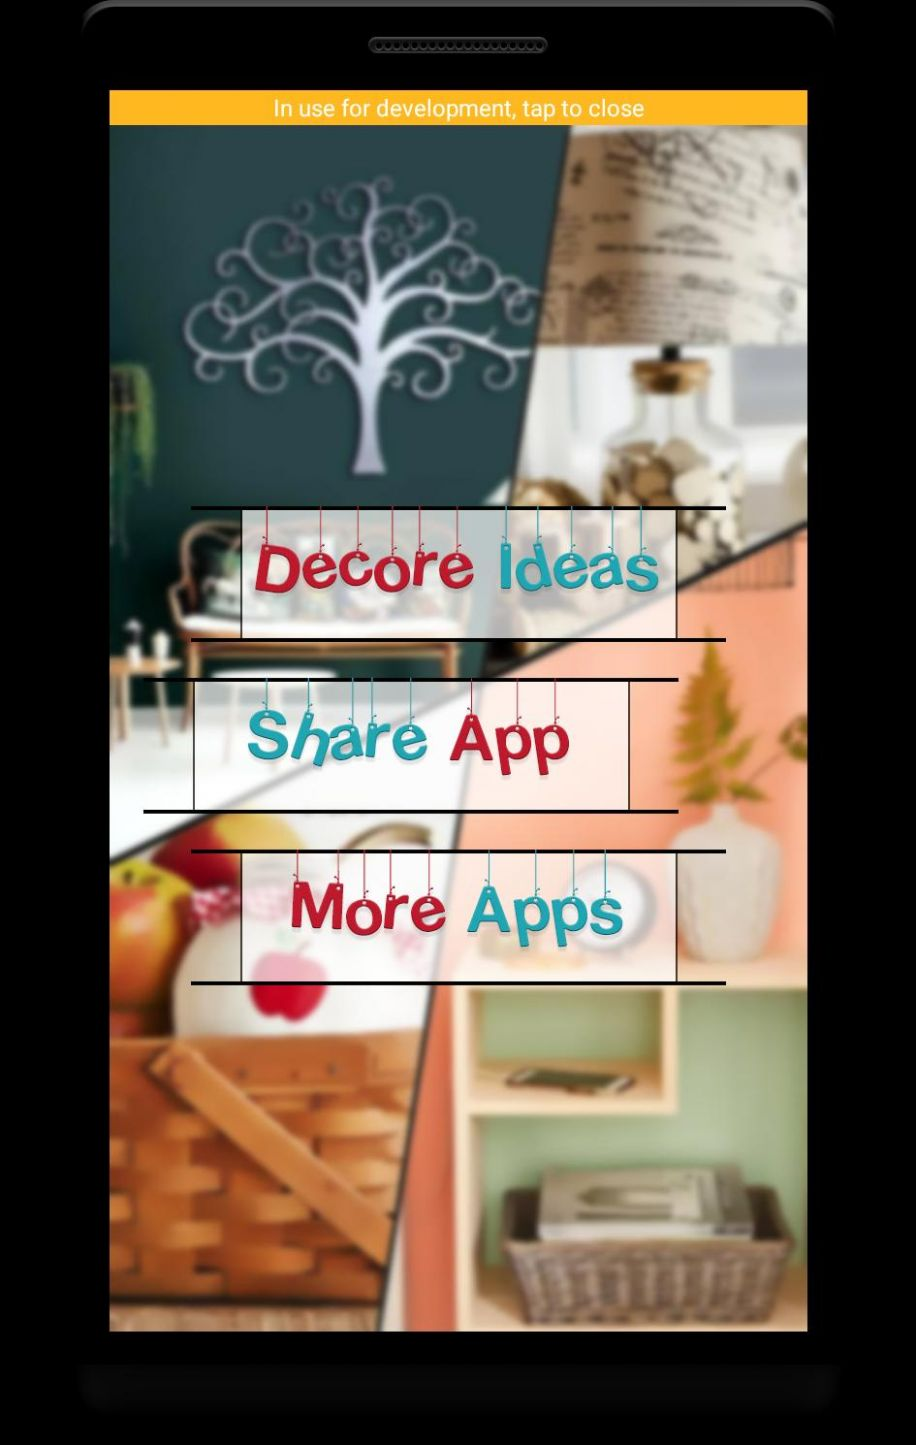 Easy DIY Home Decor Ideas latest for Android - APK Download